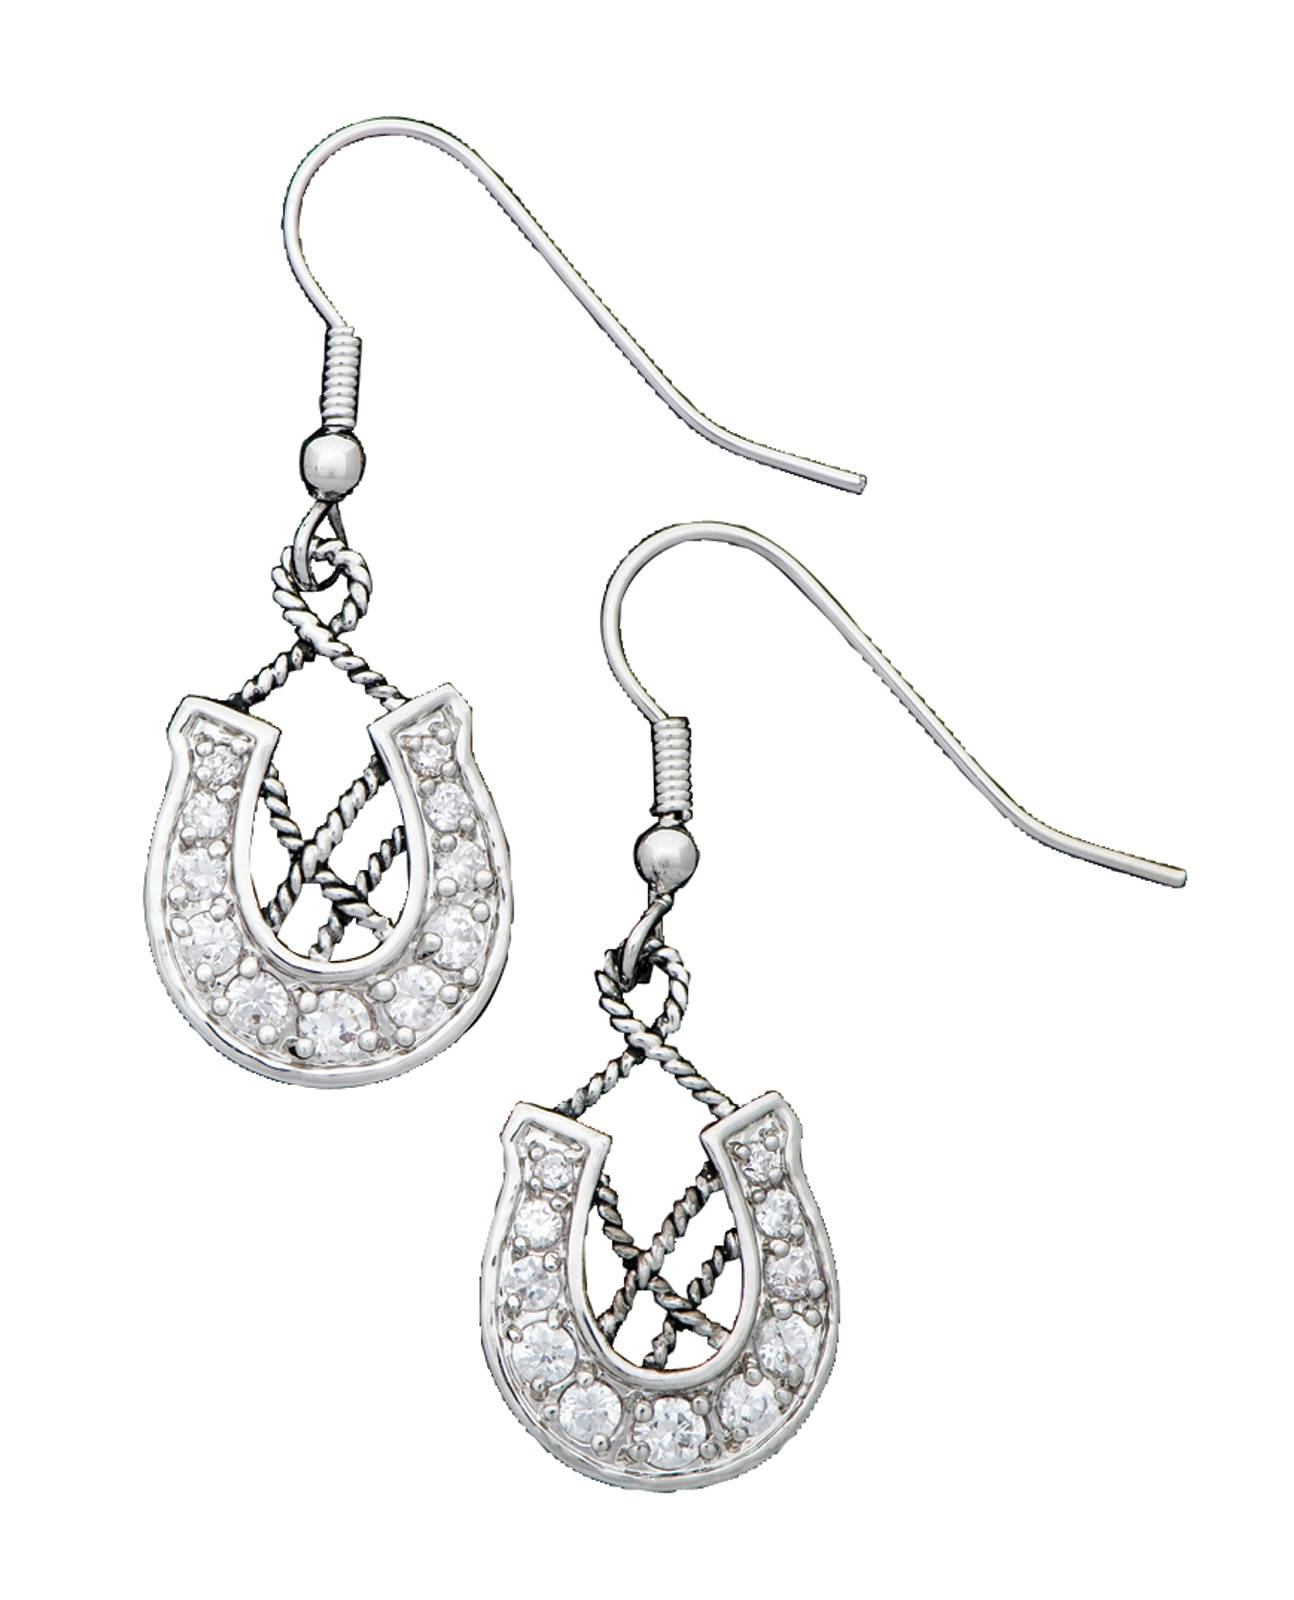 Montana Silversmiths Vintage Charm Making Your Own Way Earrings